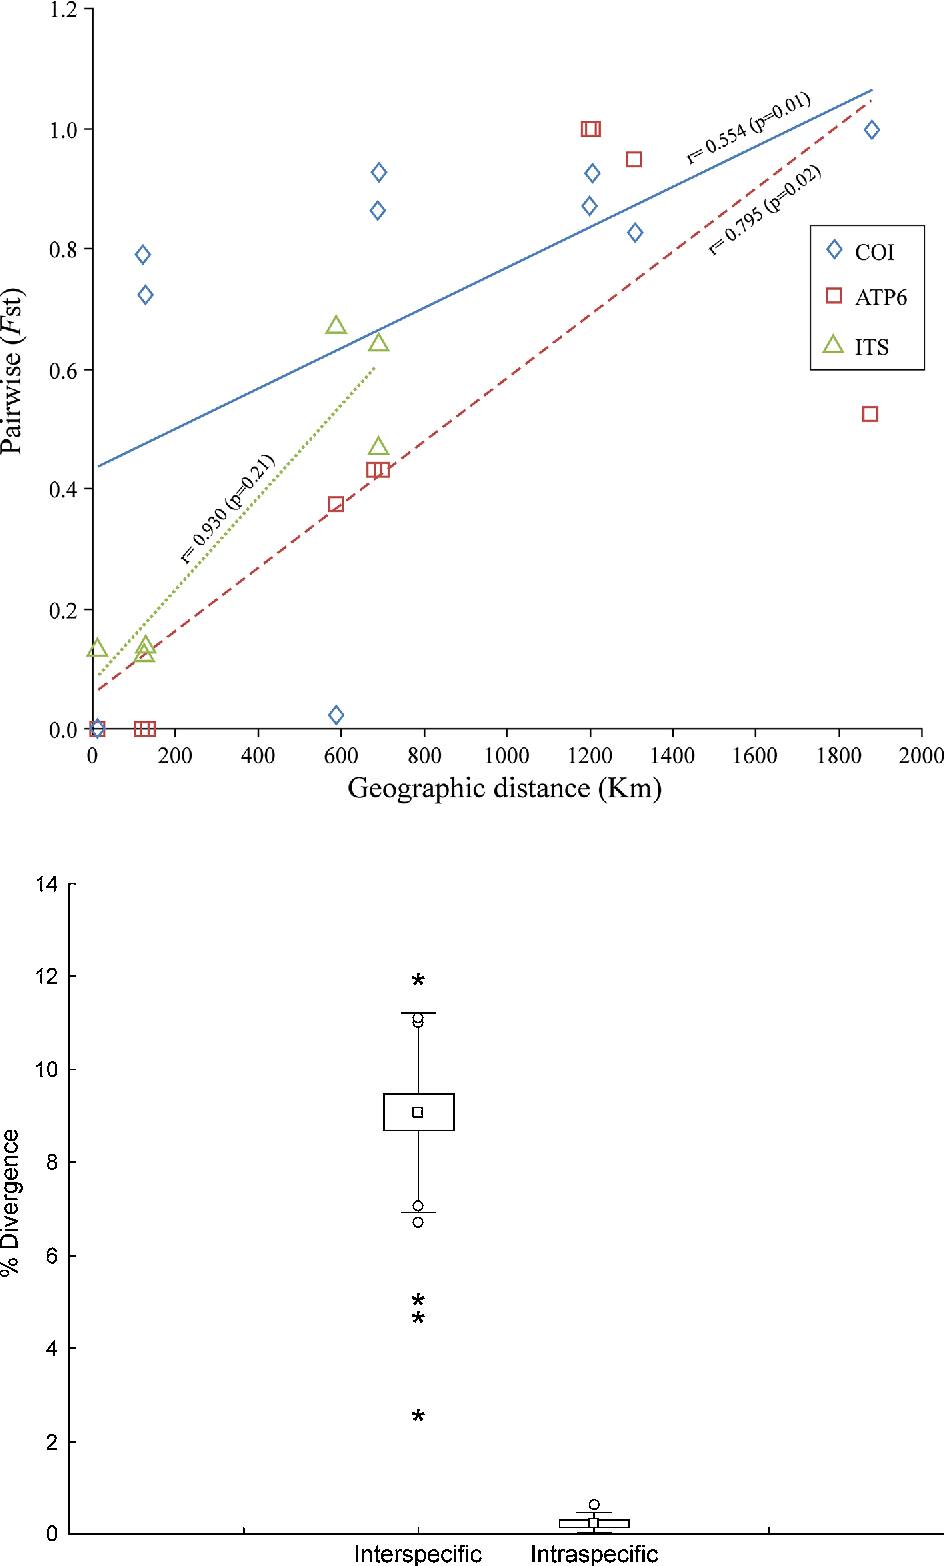 Fig. 3 Patterns of isolation by distance in two mitochondrial (COI and ATP6) and a nuclear (ITS) gene of Cliona vermifera in the Mexican Pacific (p values in parenthesis)